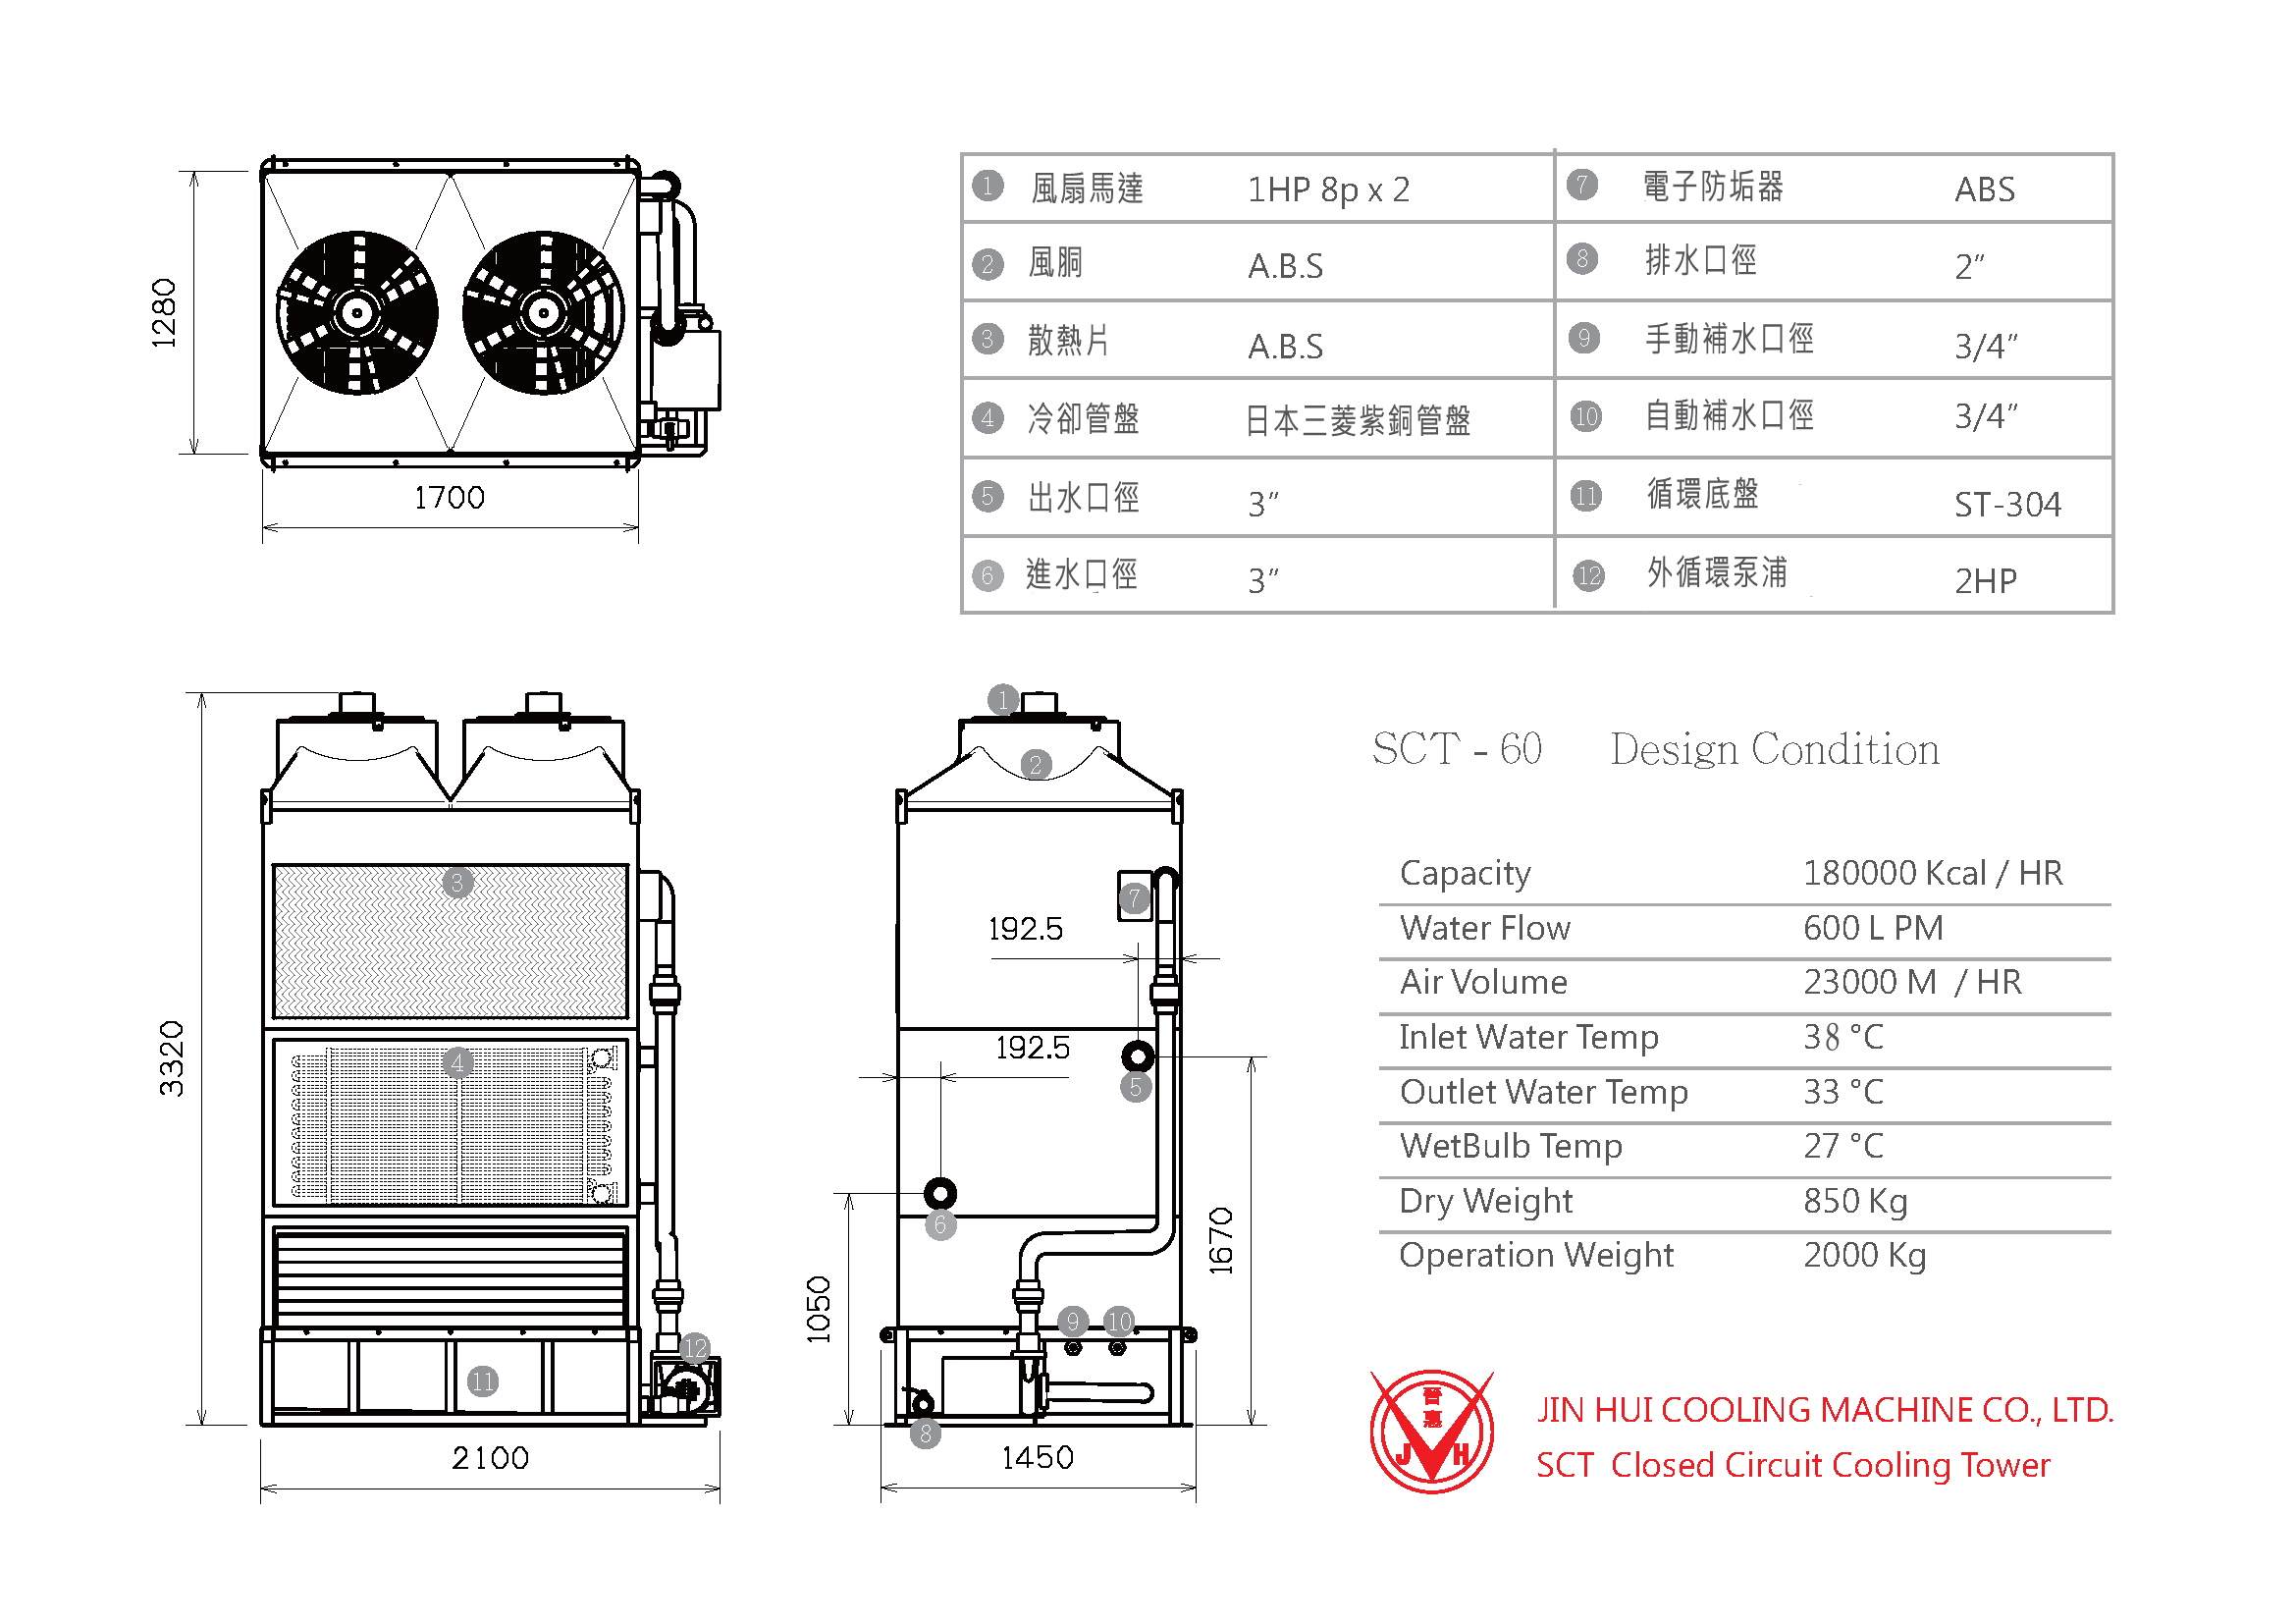 SCT-60 Design Condition